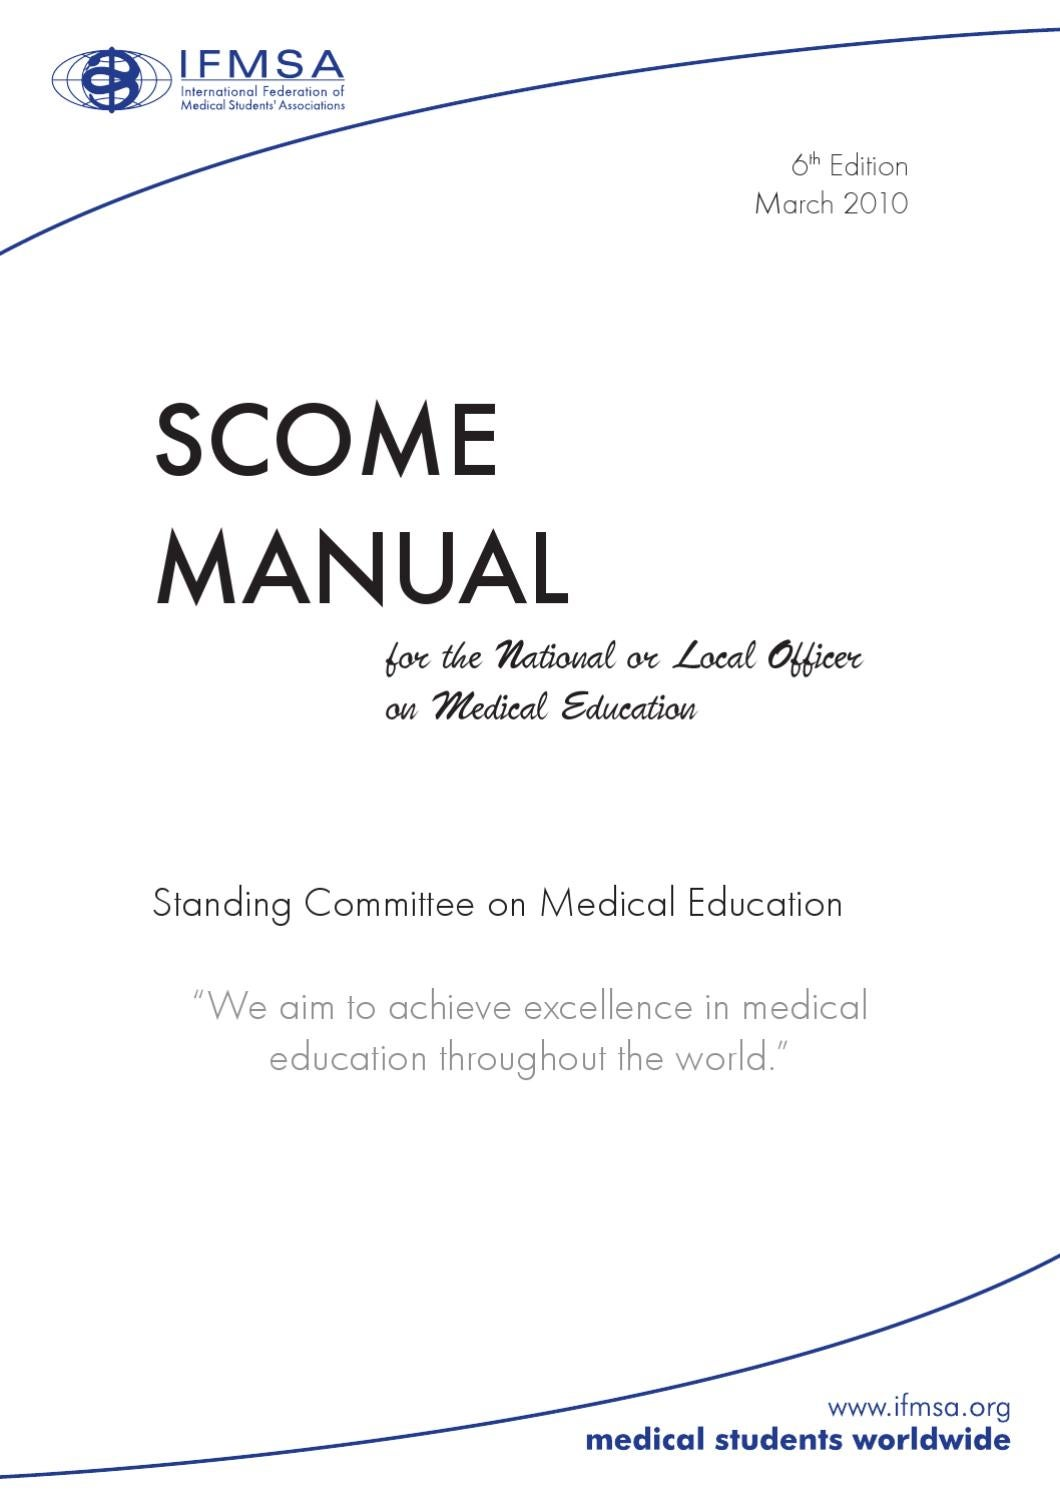 SCOME Manual 6 by International Federation of Medical Students'  Associations - issuu